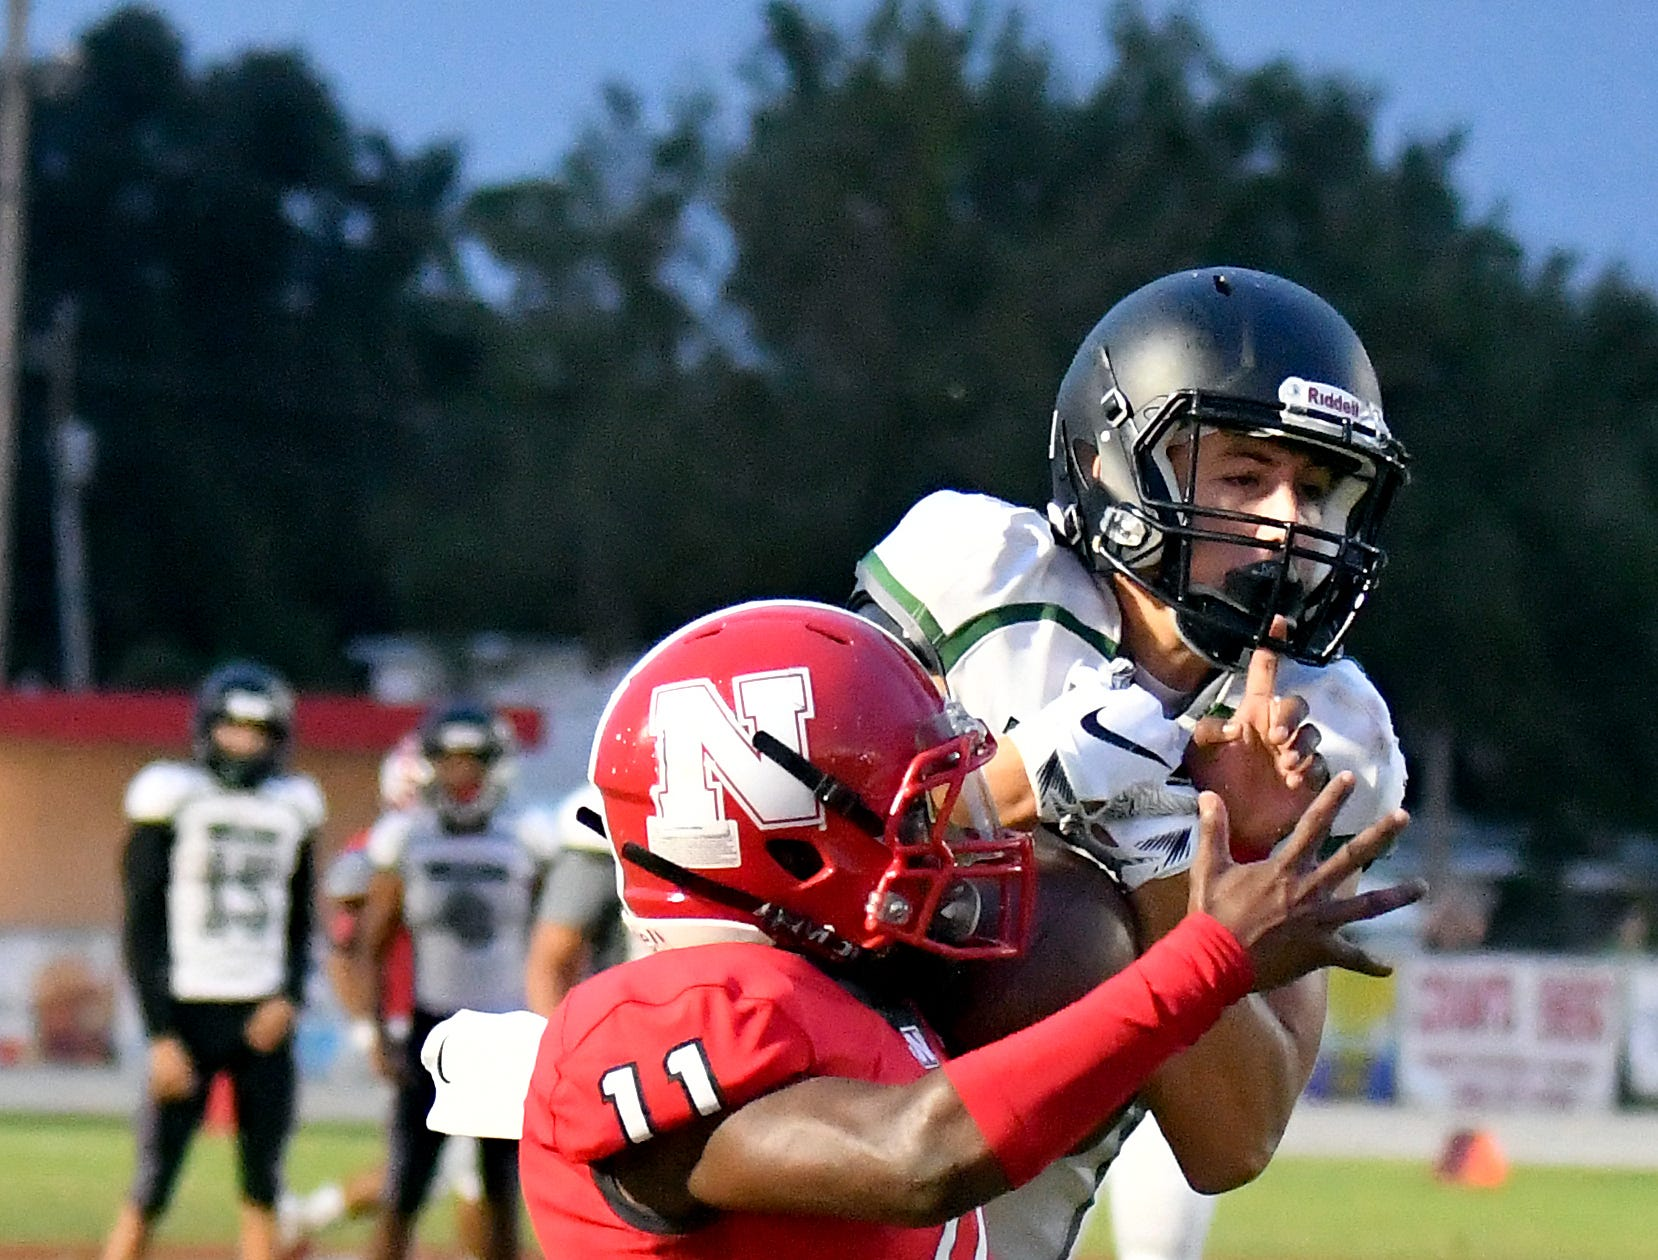 North Fort Myers High School host Palmetto Ridge High School, Friday, Sept. 7, 2018. (Chris Tilley/Special to the Naples Daily News)